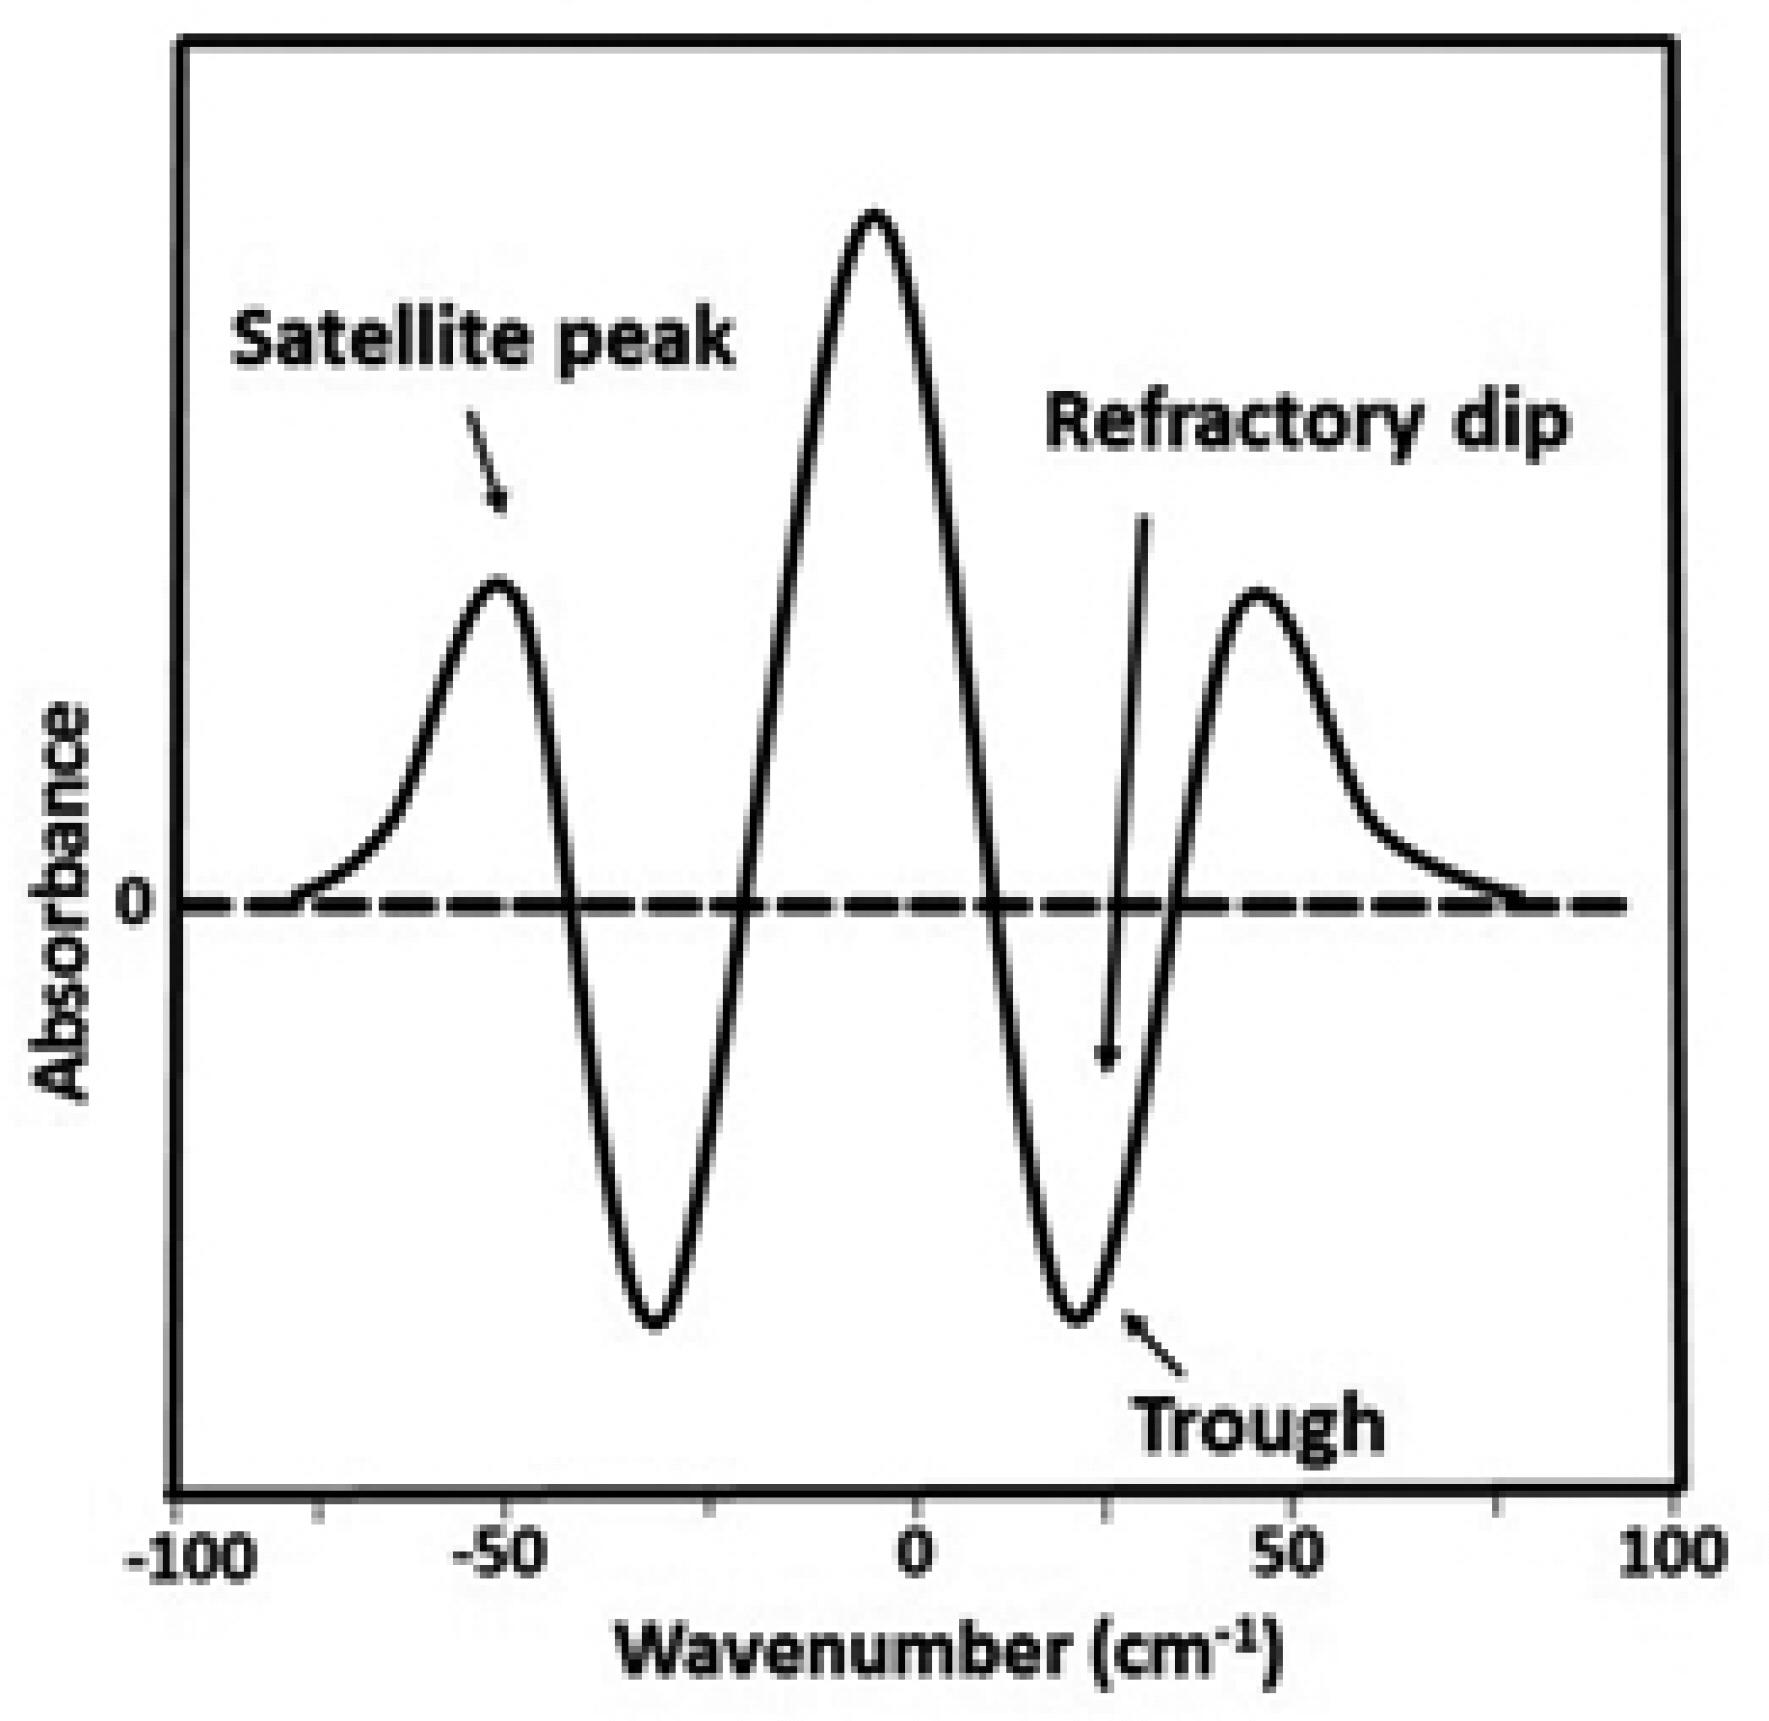 A REVIEW ON DERIVATIVE UV-SPECTROPHOTOMETRY ANALYSIS OF